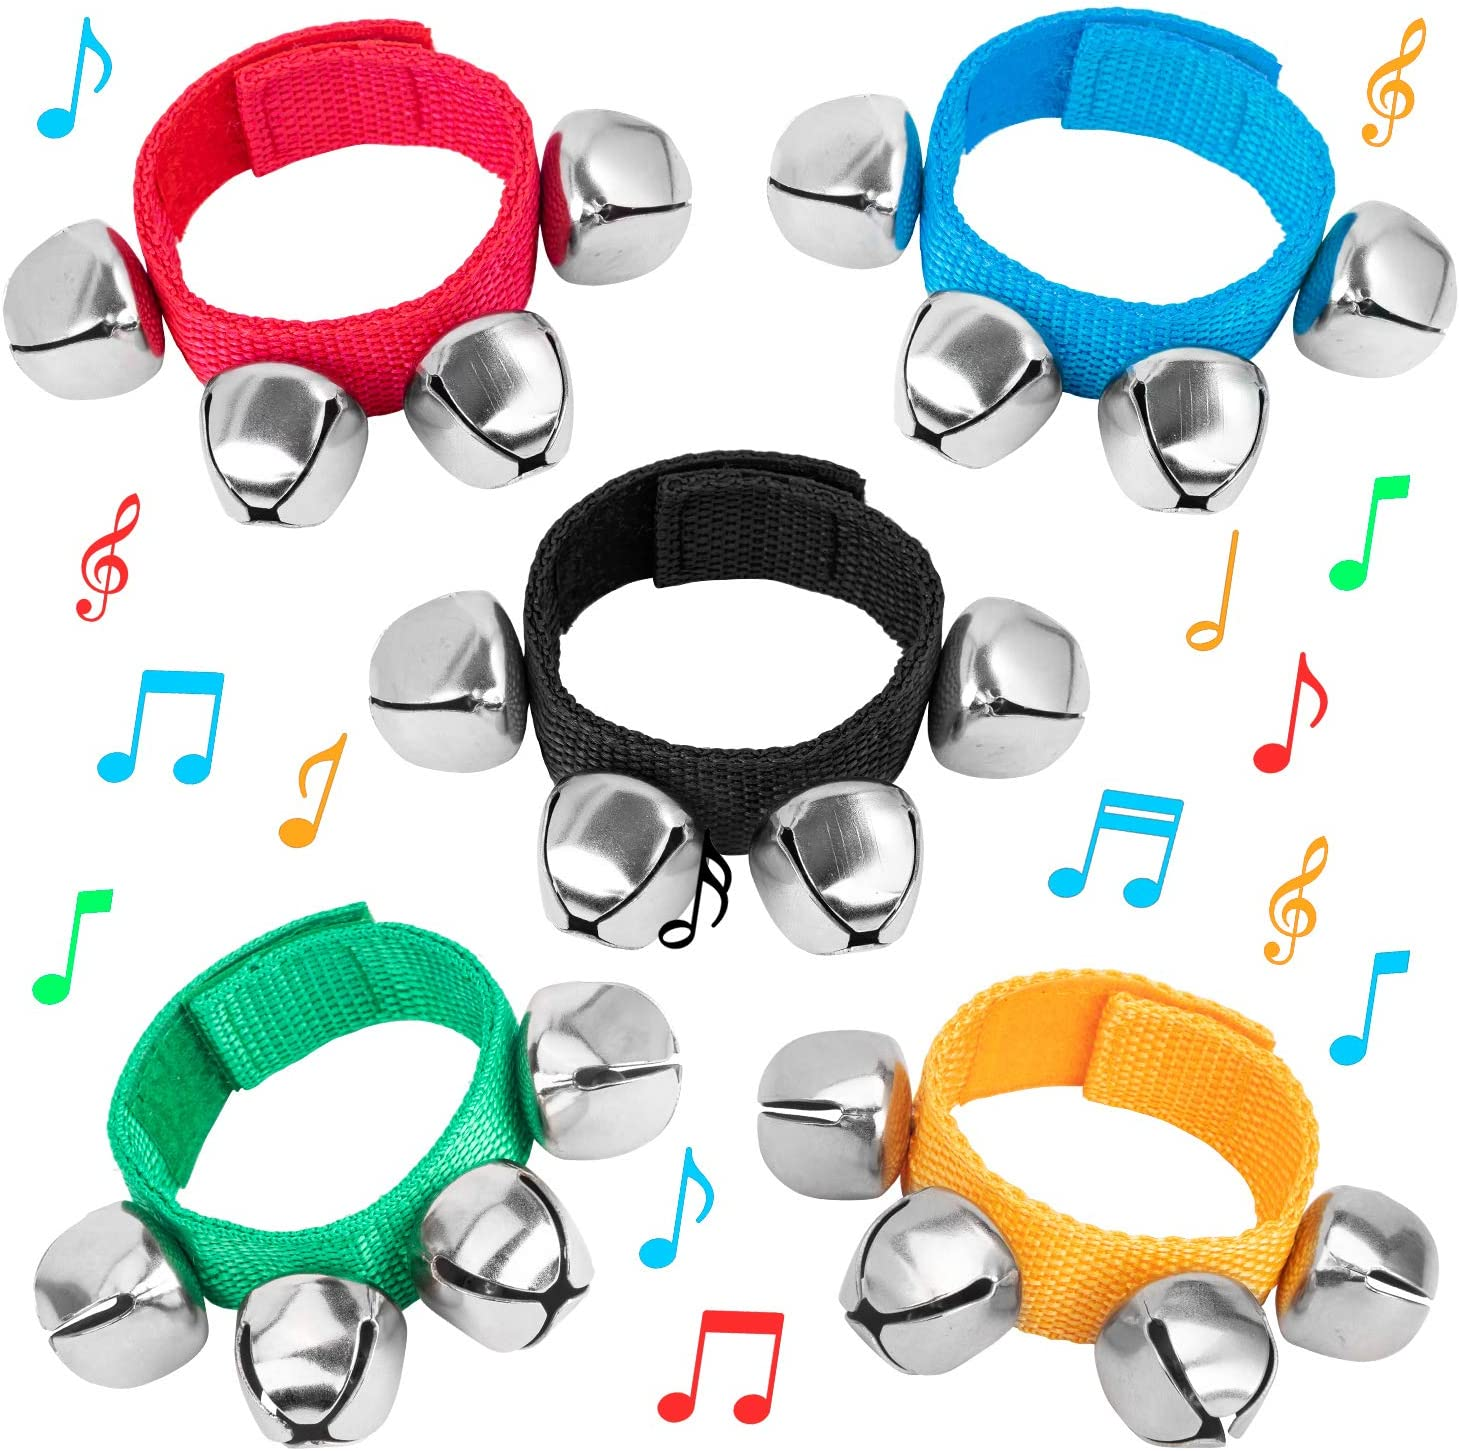 4-Bell Jingle Wrist Rattle Toy Ankle Musical Instrument Educational  Kid Toy